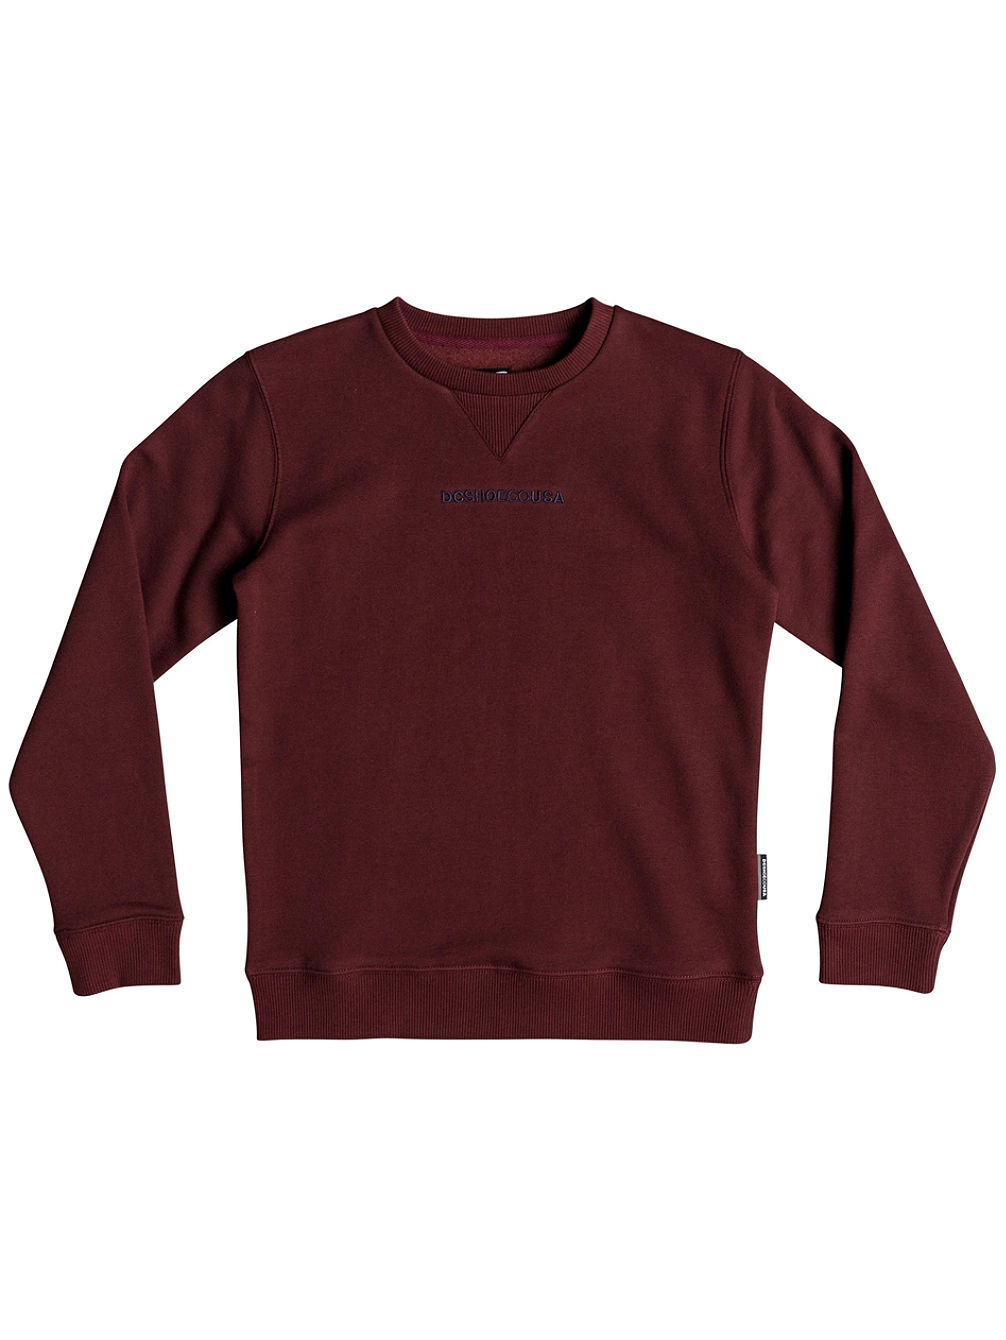 Craigburn Crew Sweater Boys2